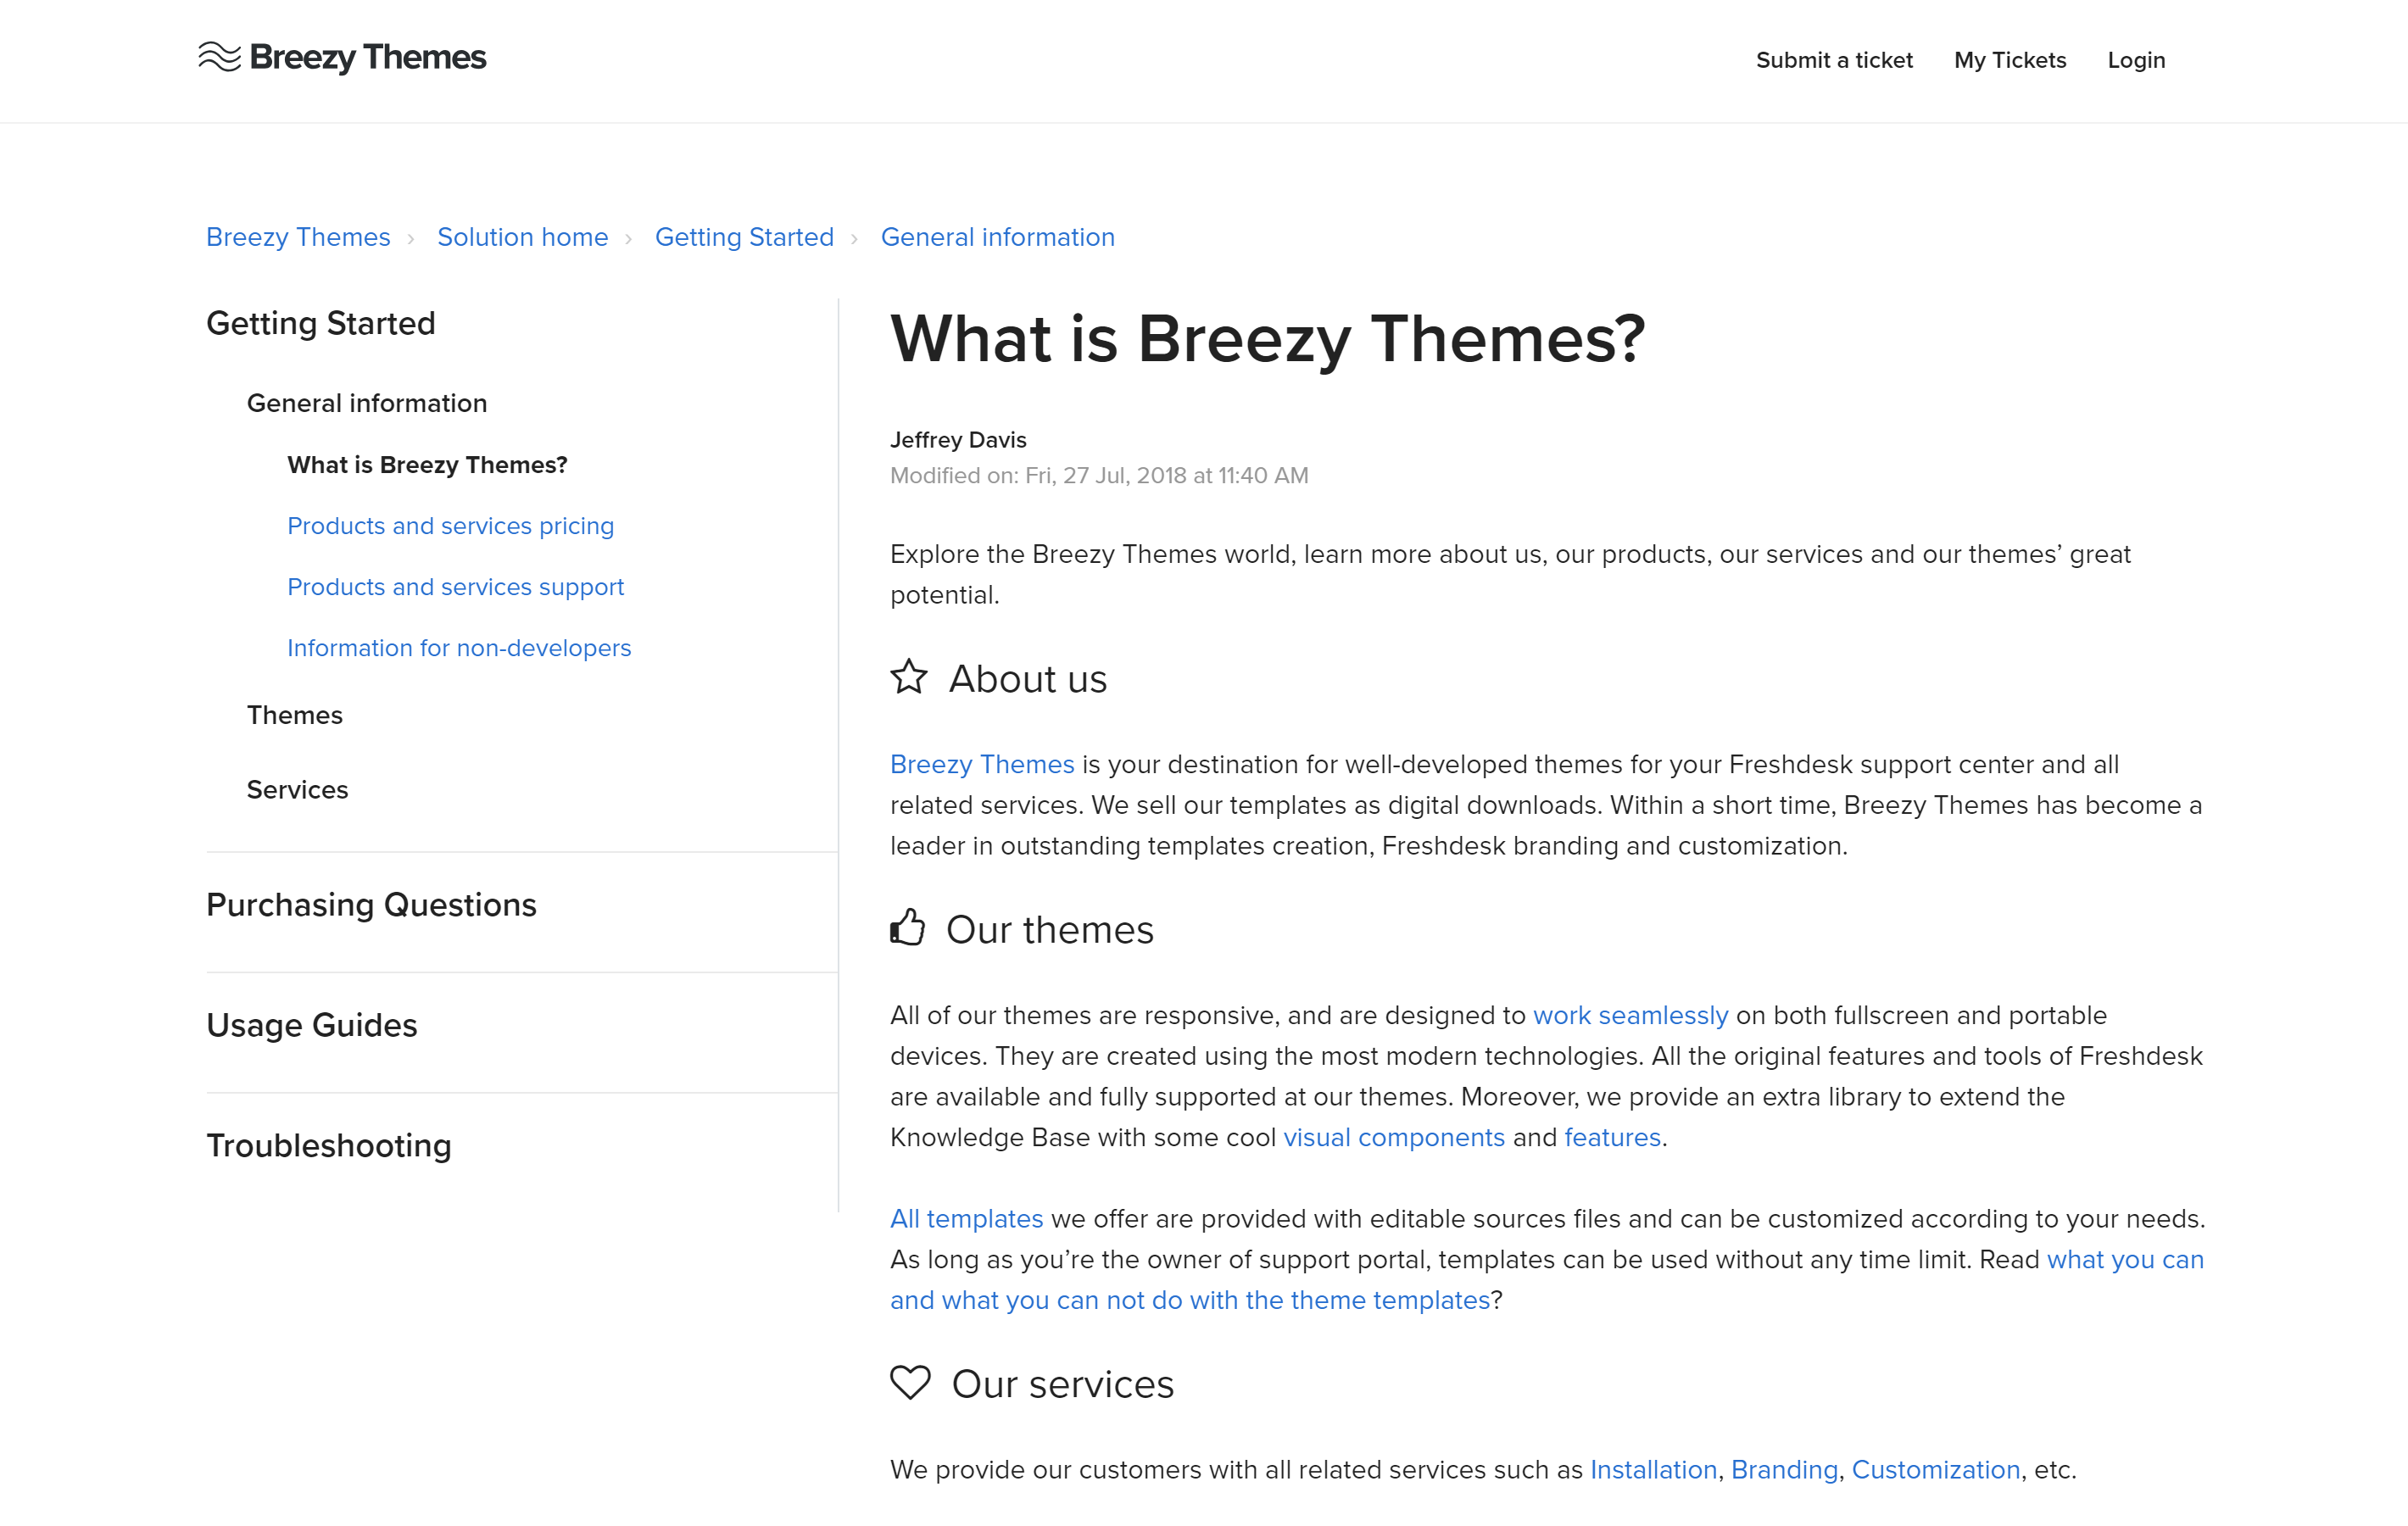 Article page on a Freshdesk theme customized by Breezy Themes